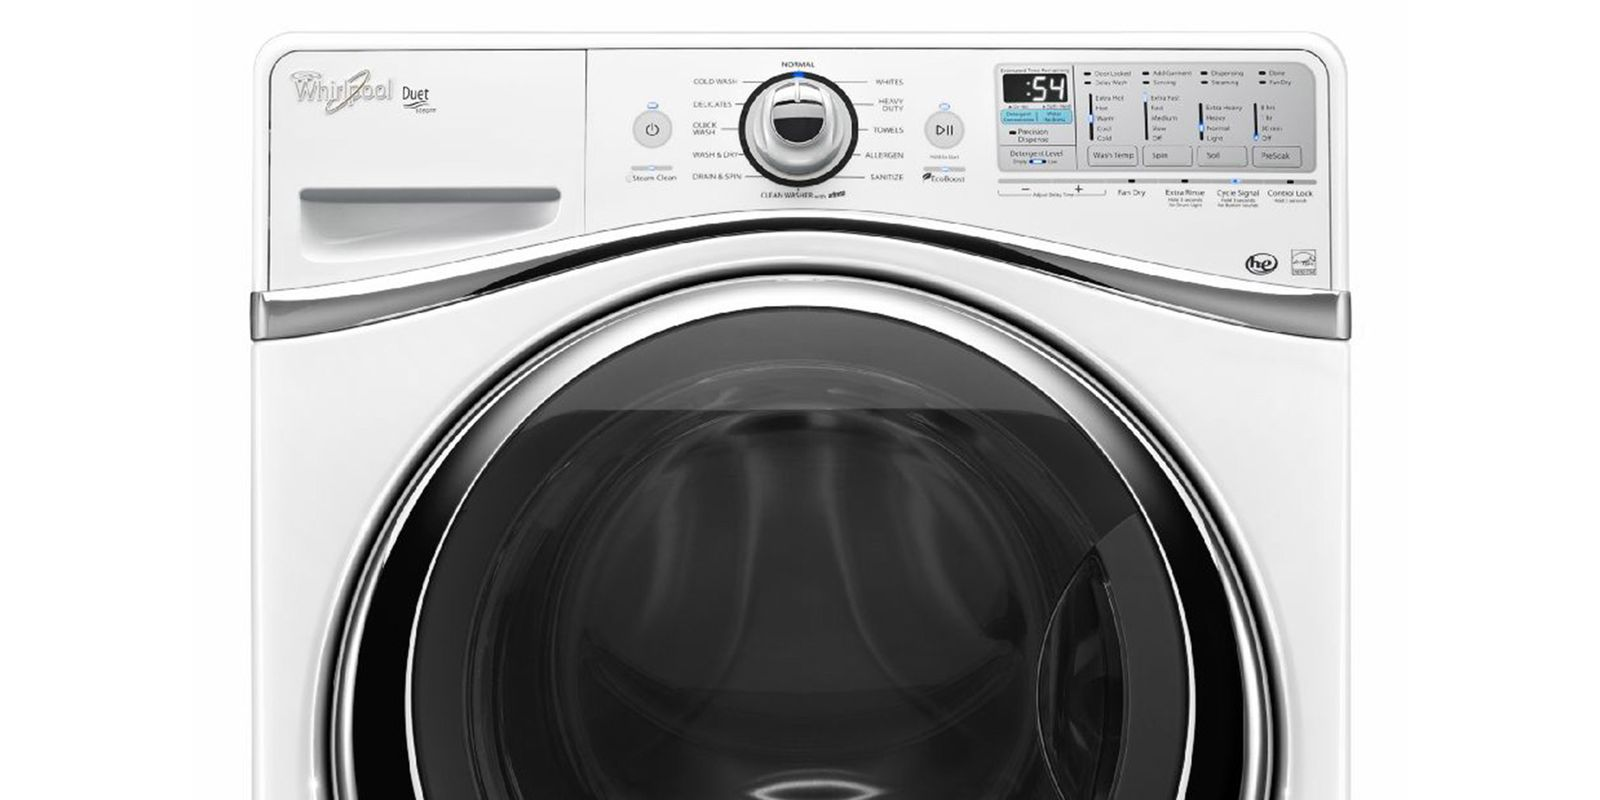 The best top load washer on the market - Duet Steam Front Load Washer With Precision Dispense Ultra Wfw96heaw Review